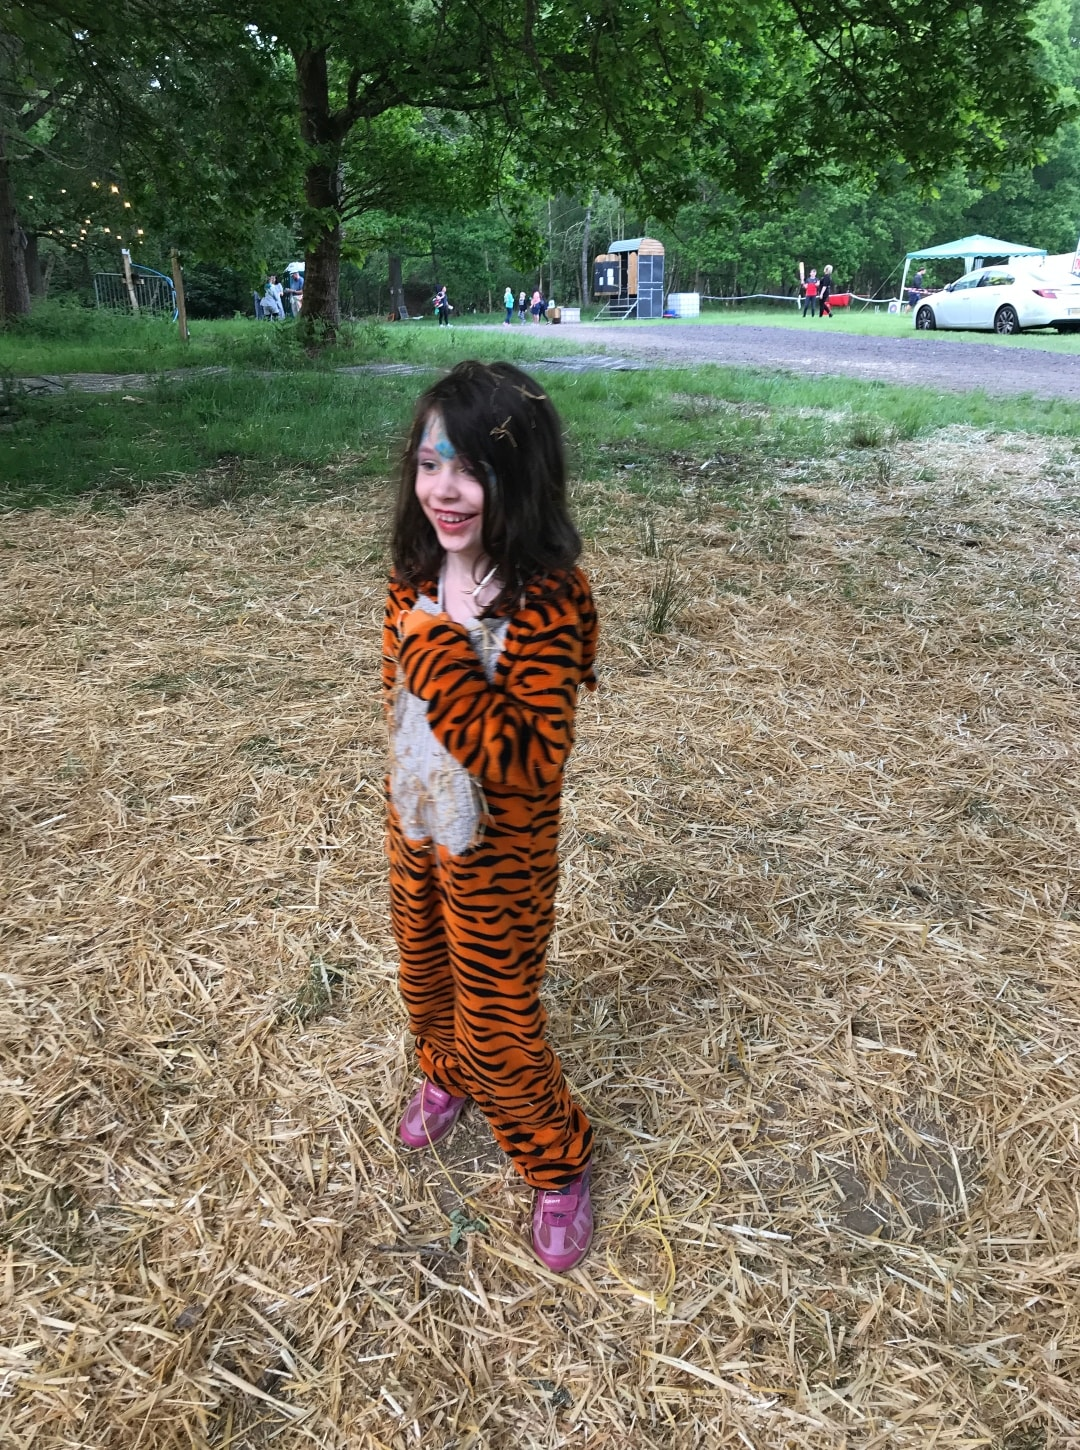 A photograph of a little girl standing in a field of hay at Elderflower Fields Festival - Elderflower Fields: The Perfect Family Festival - Part One - Mrs H's favourite things